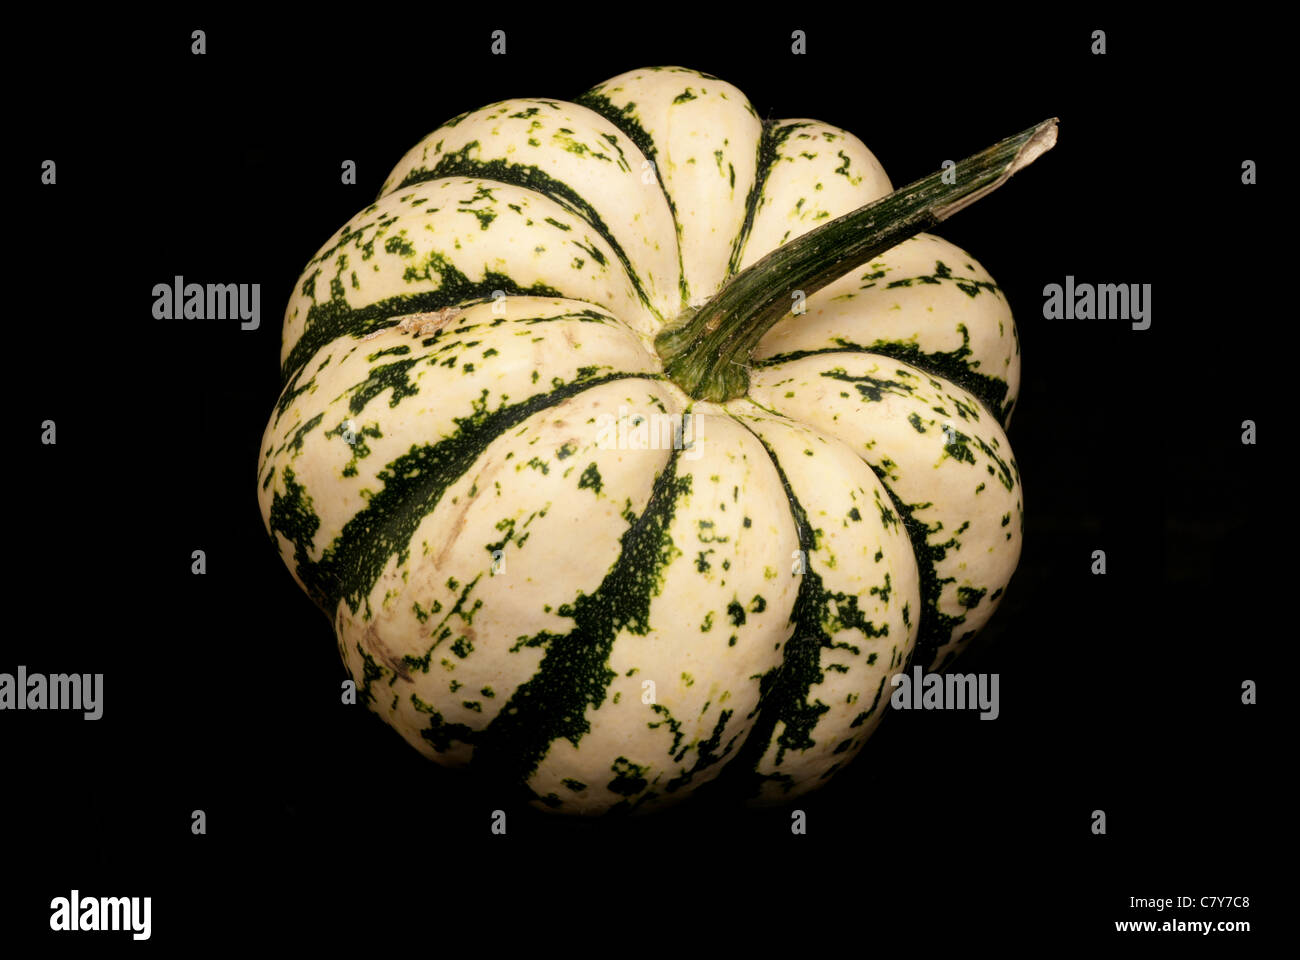 Harlequin Squash on a black background - Stock Image